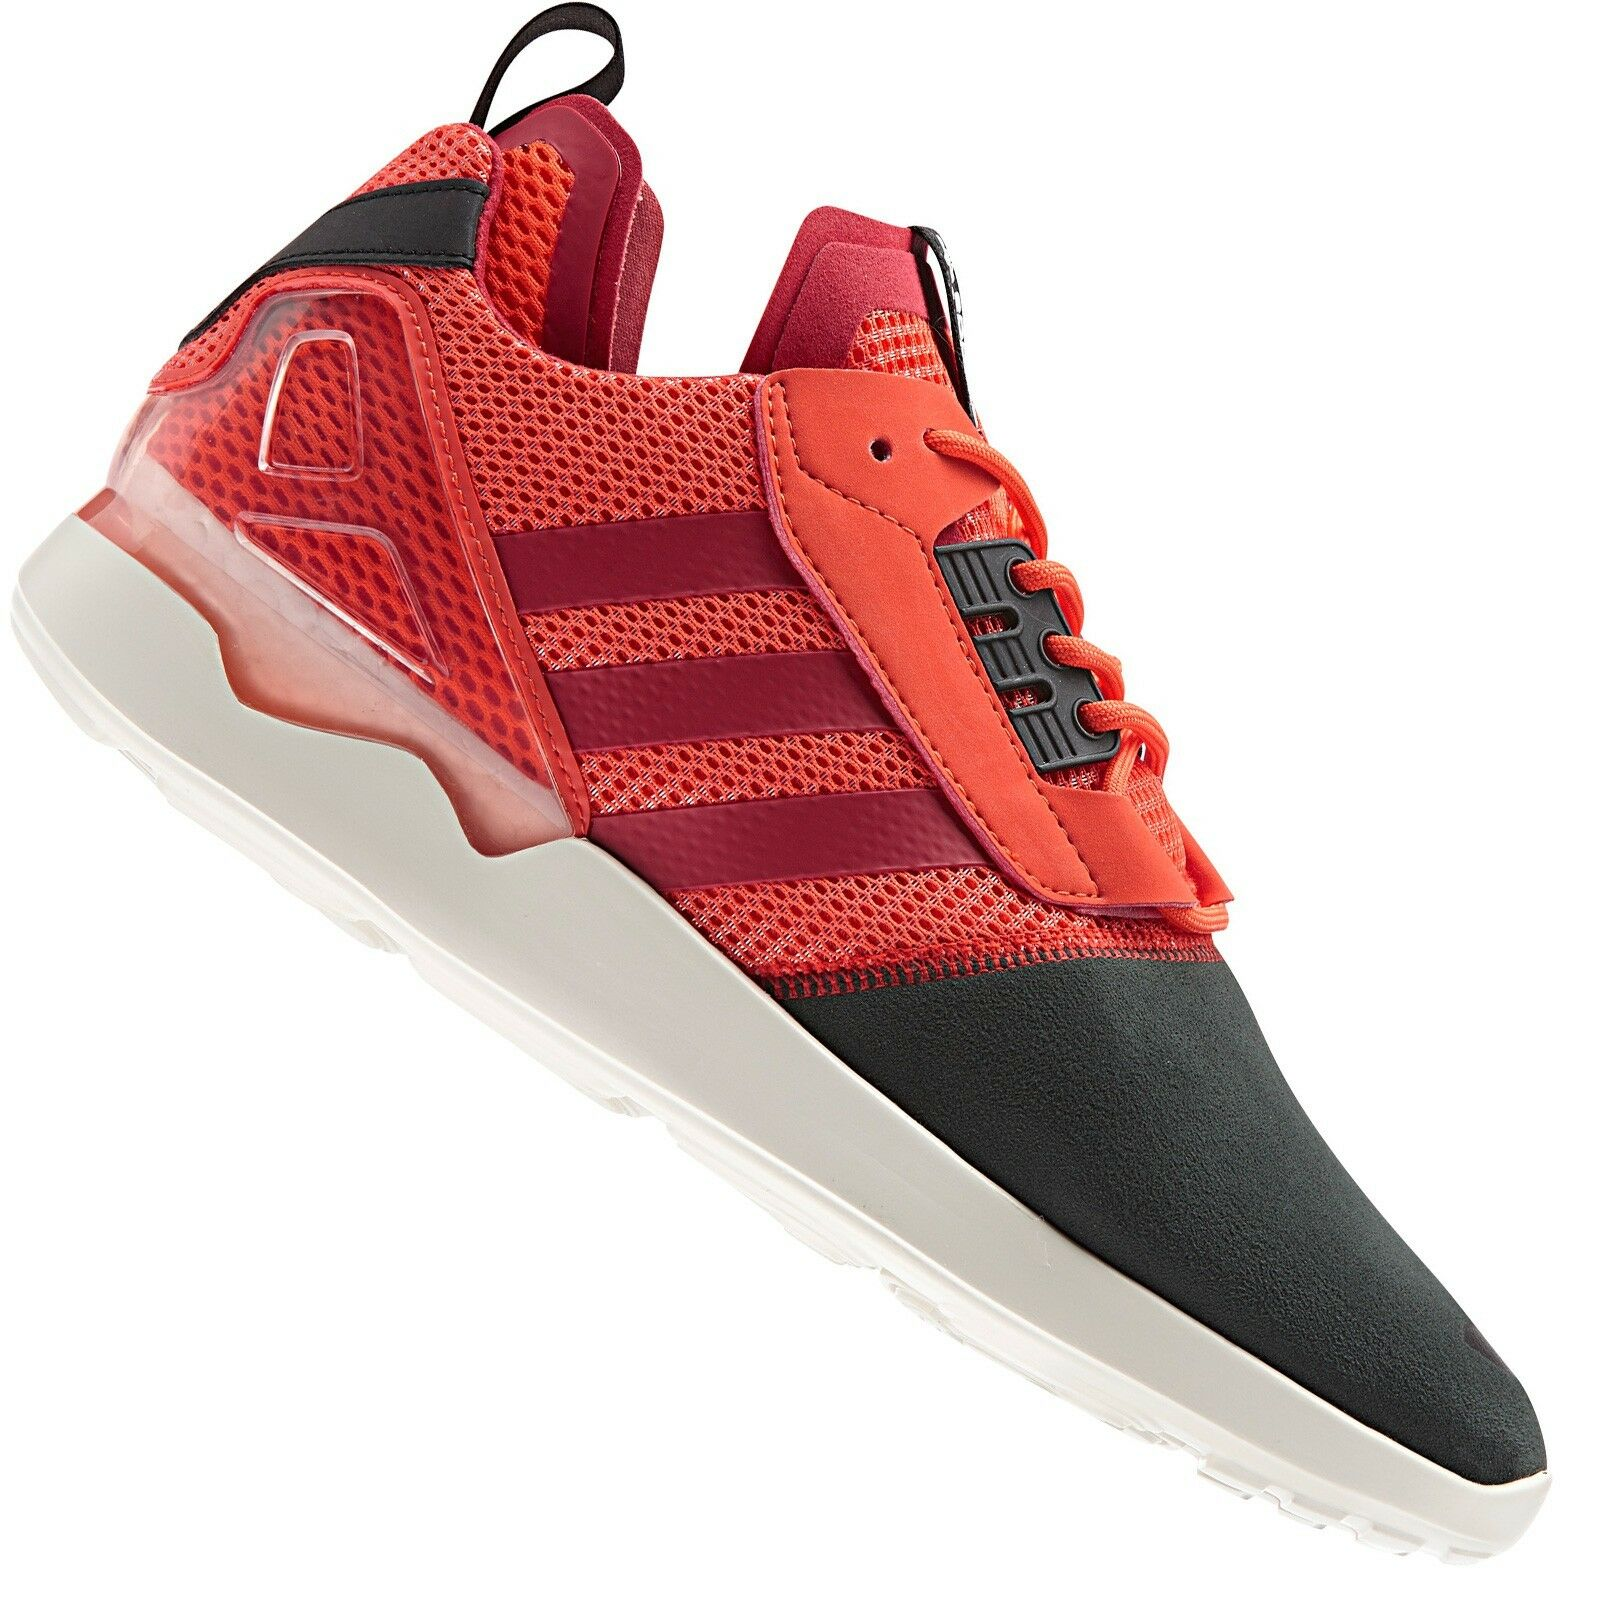 Adidas Originals zapatillas ZX 8000 Boost running zapatillas Originals deporte zapatos rojo negro 42 933ad8